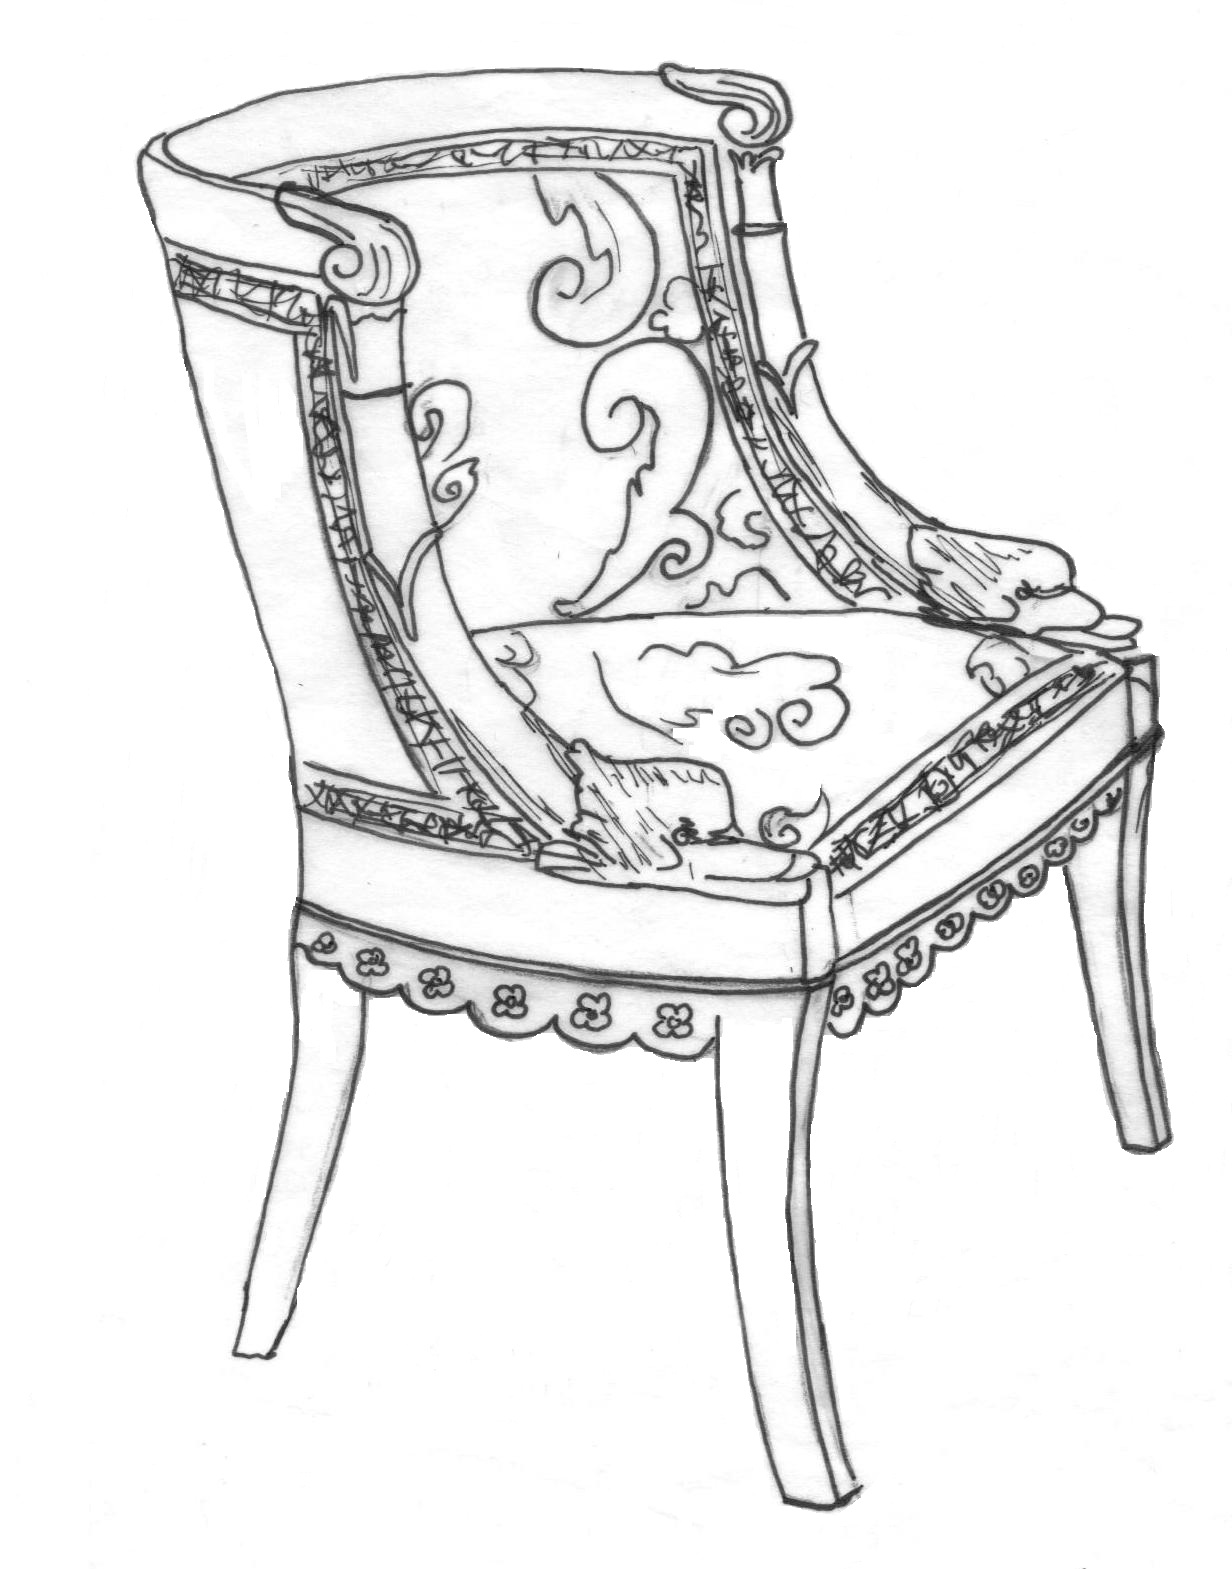 Rococo furniture sketch - Gondola Chair Gondola Chair Jacob Desmalter Early 19th Century Paris Empire